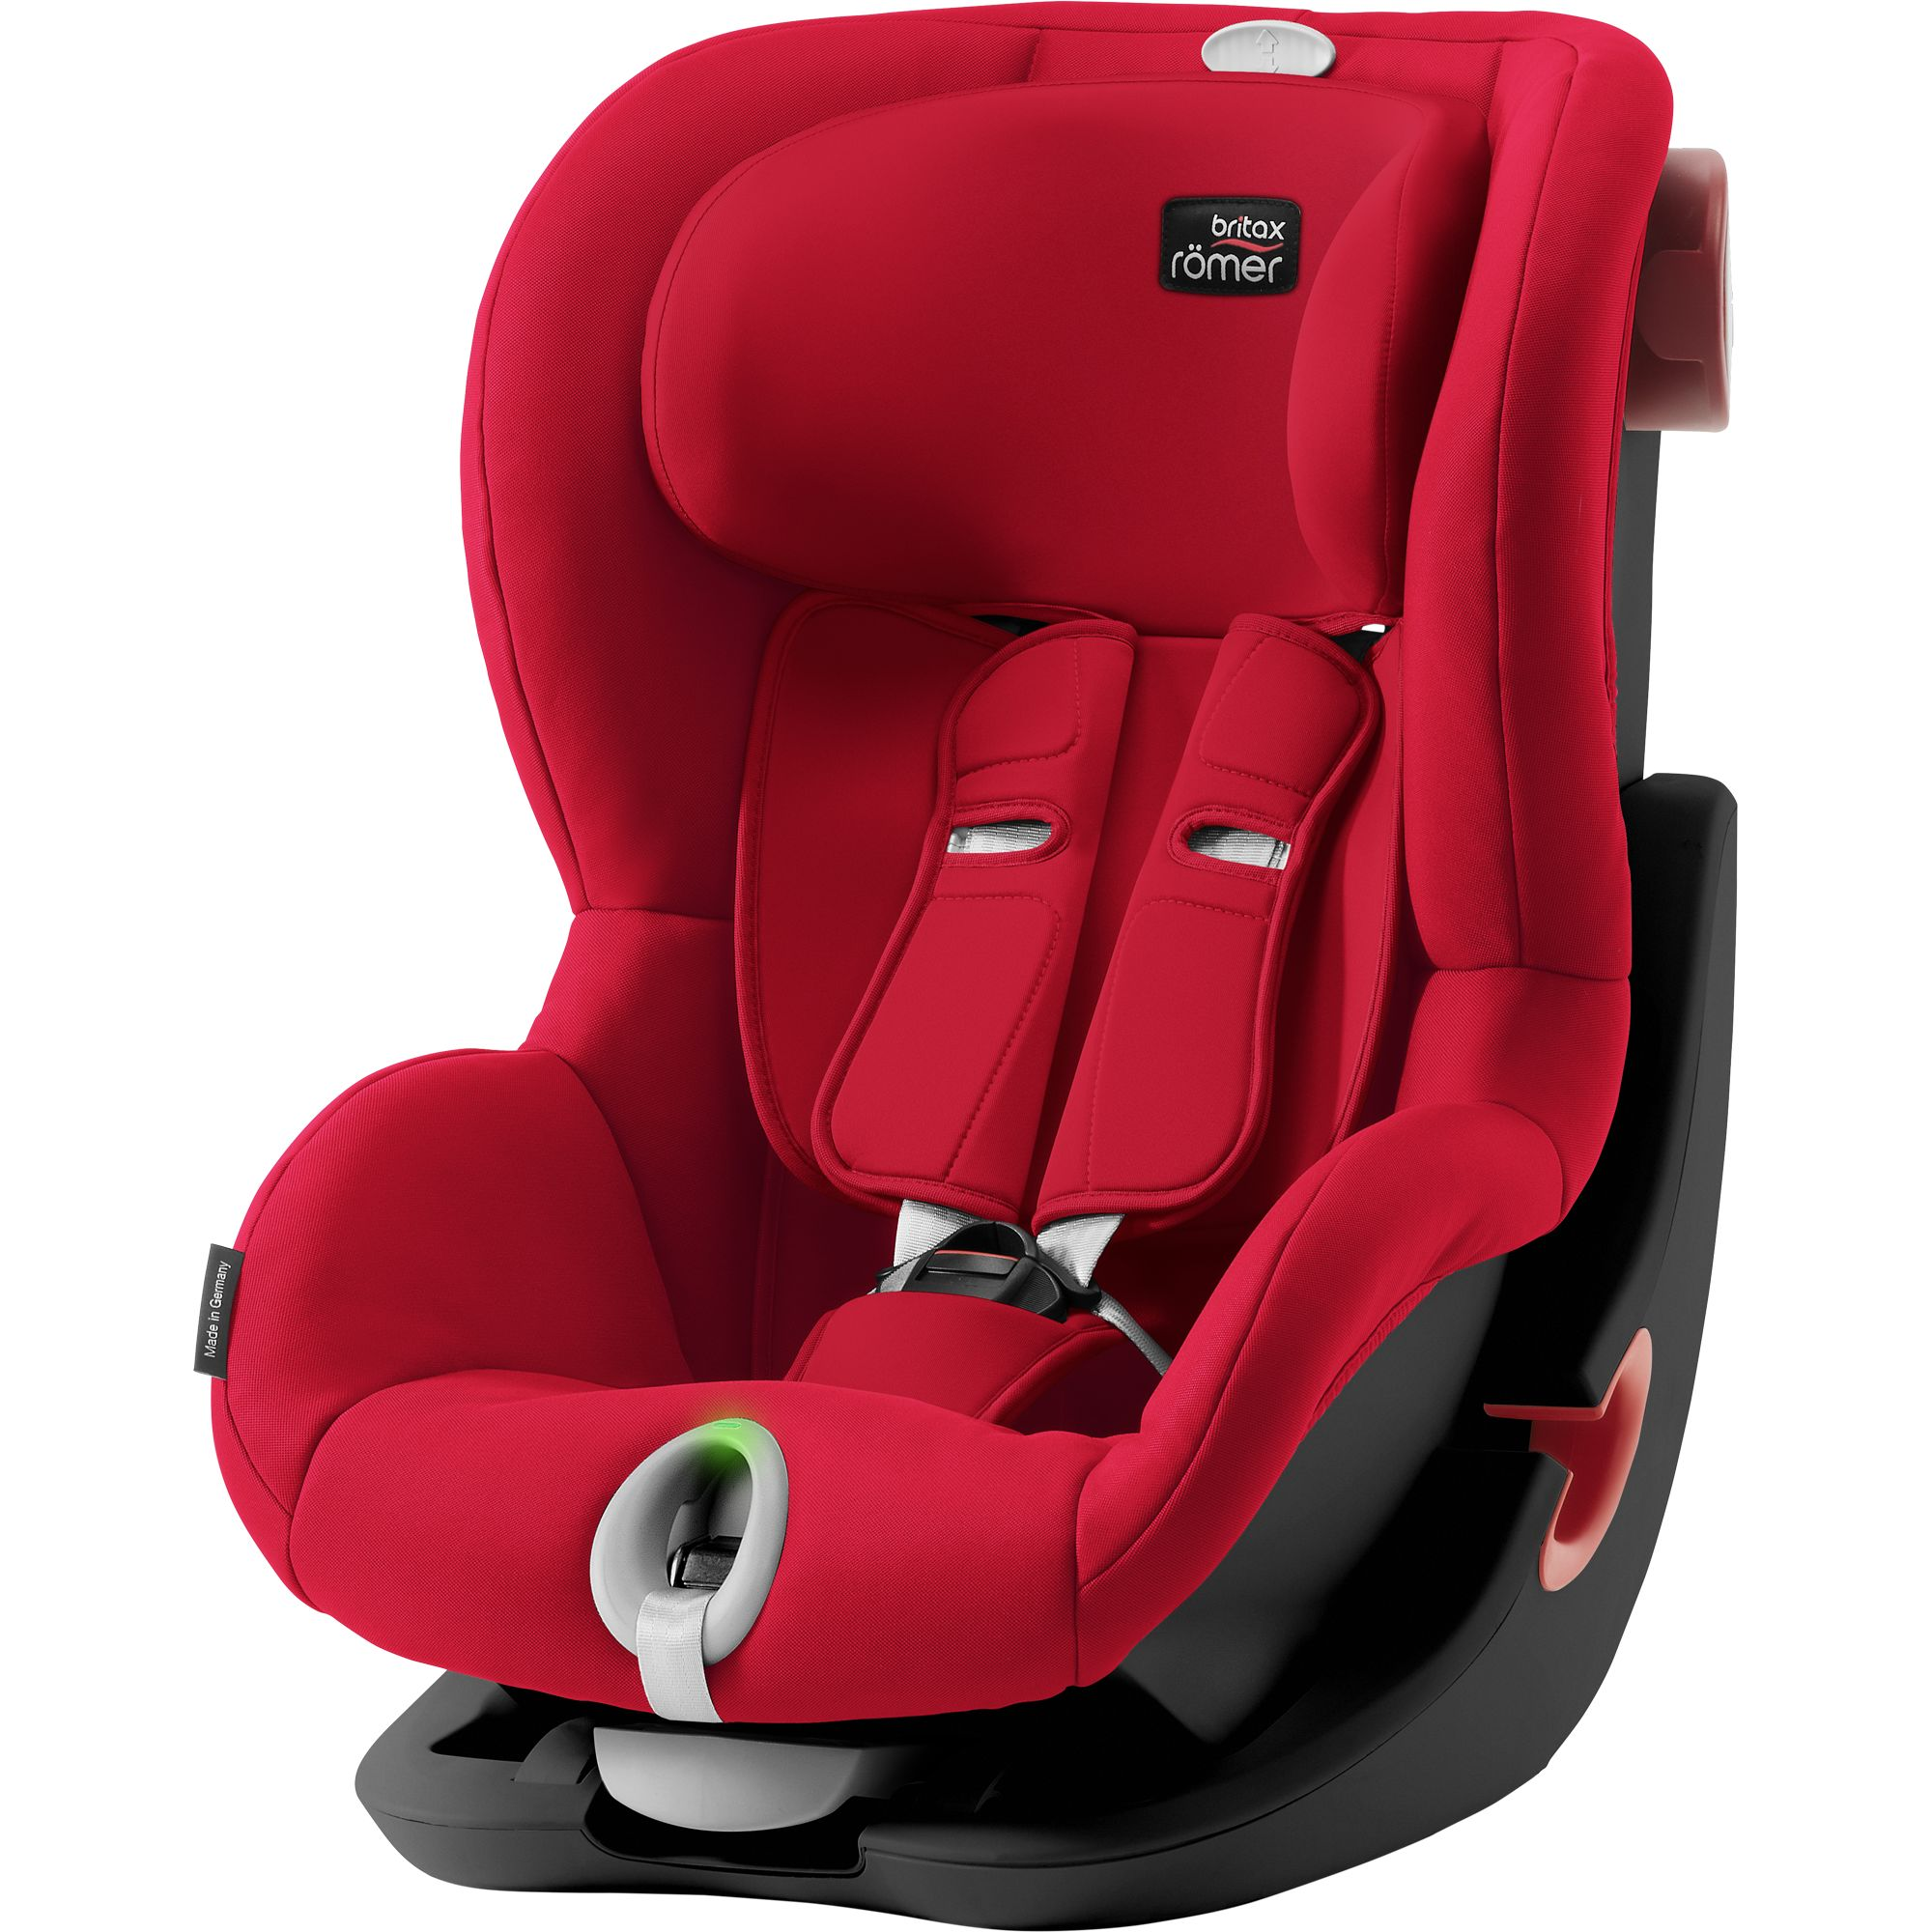 Детское автокресло Britax Roemer King II LS Black Series Fire Red Trendline, красный